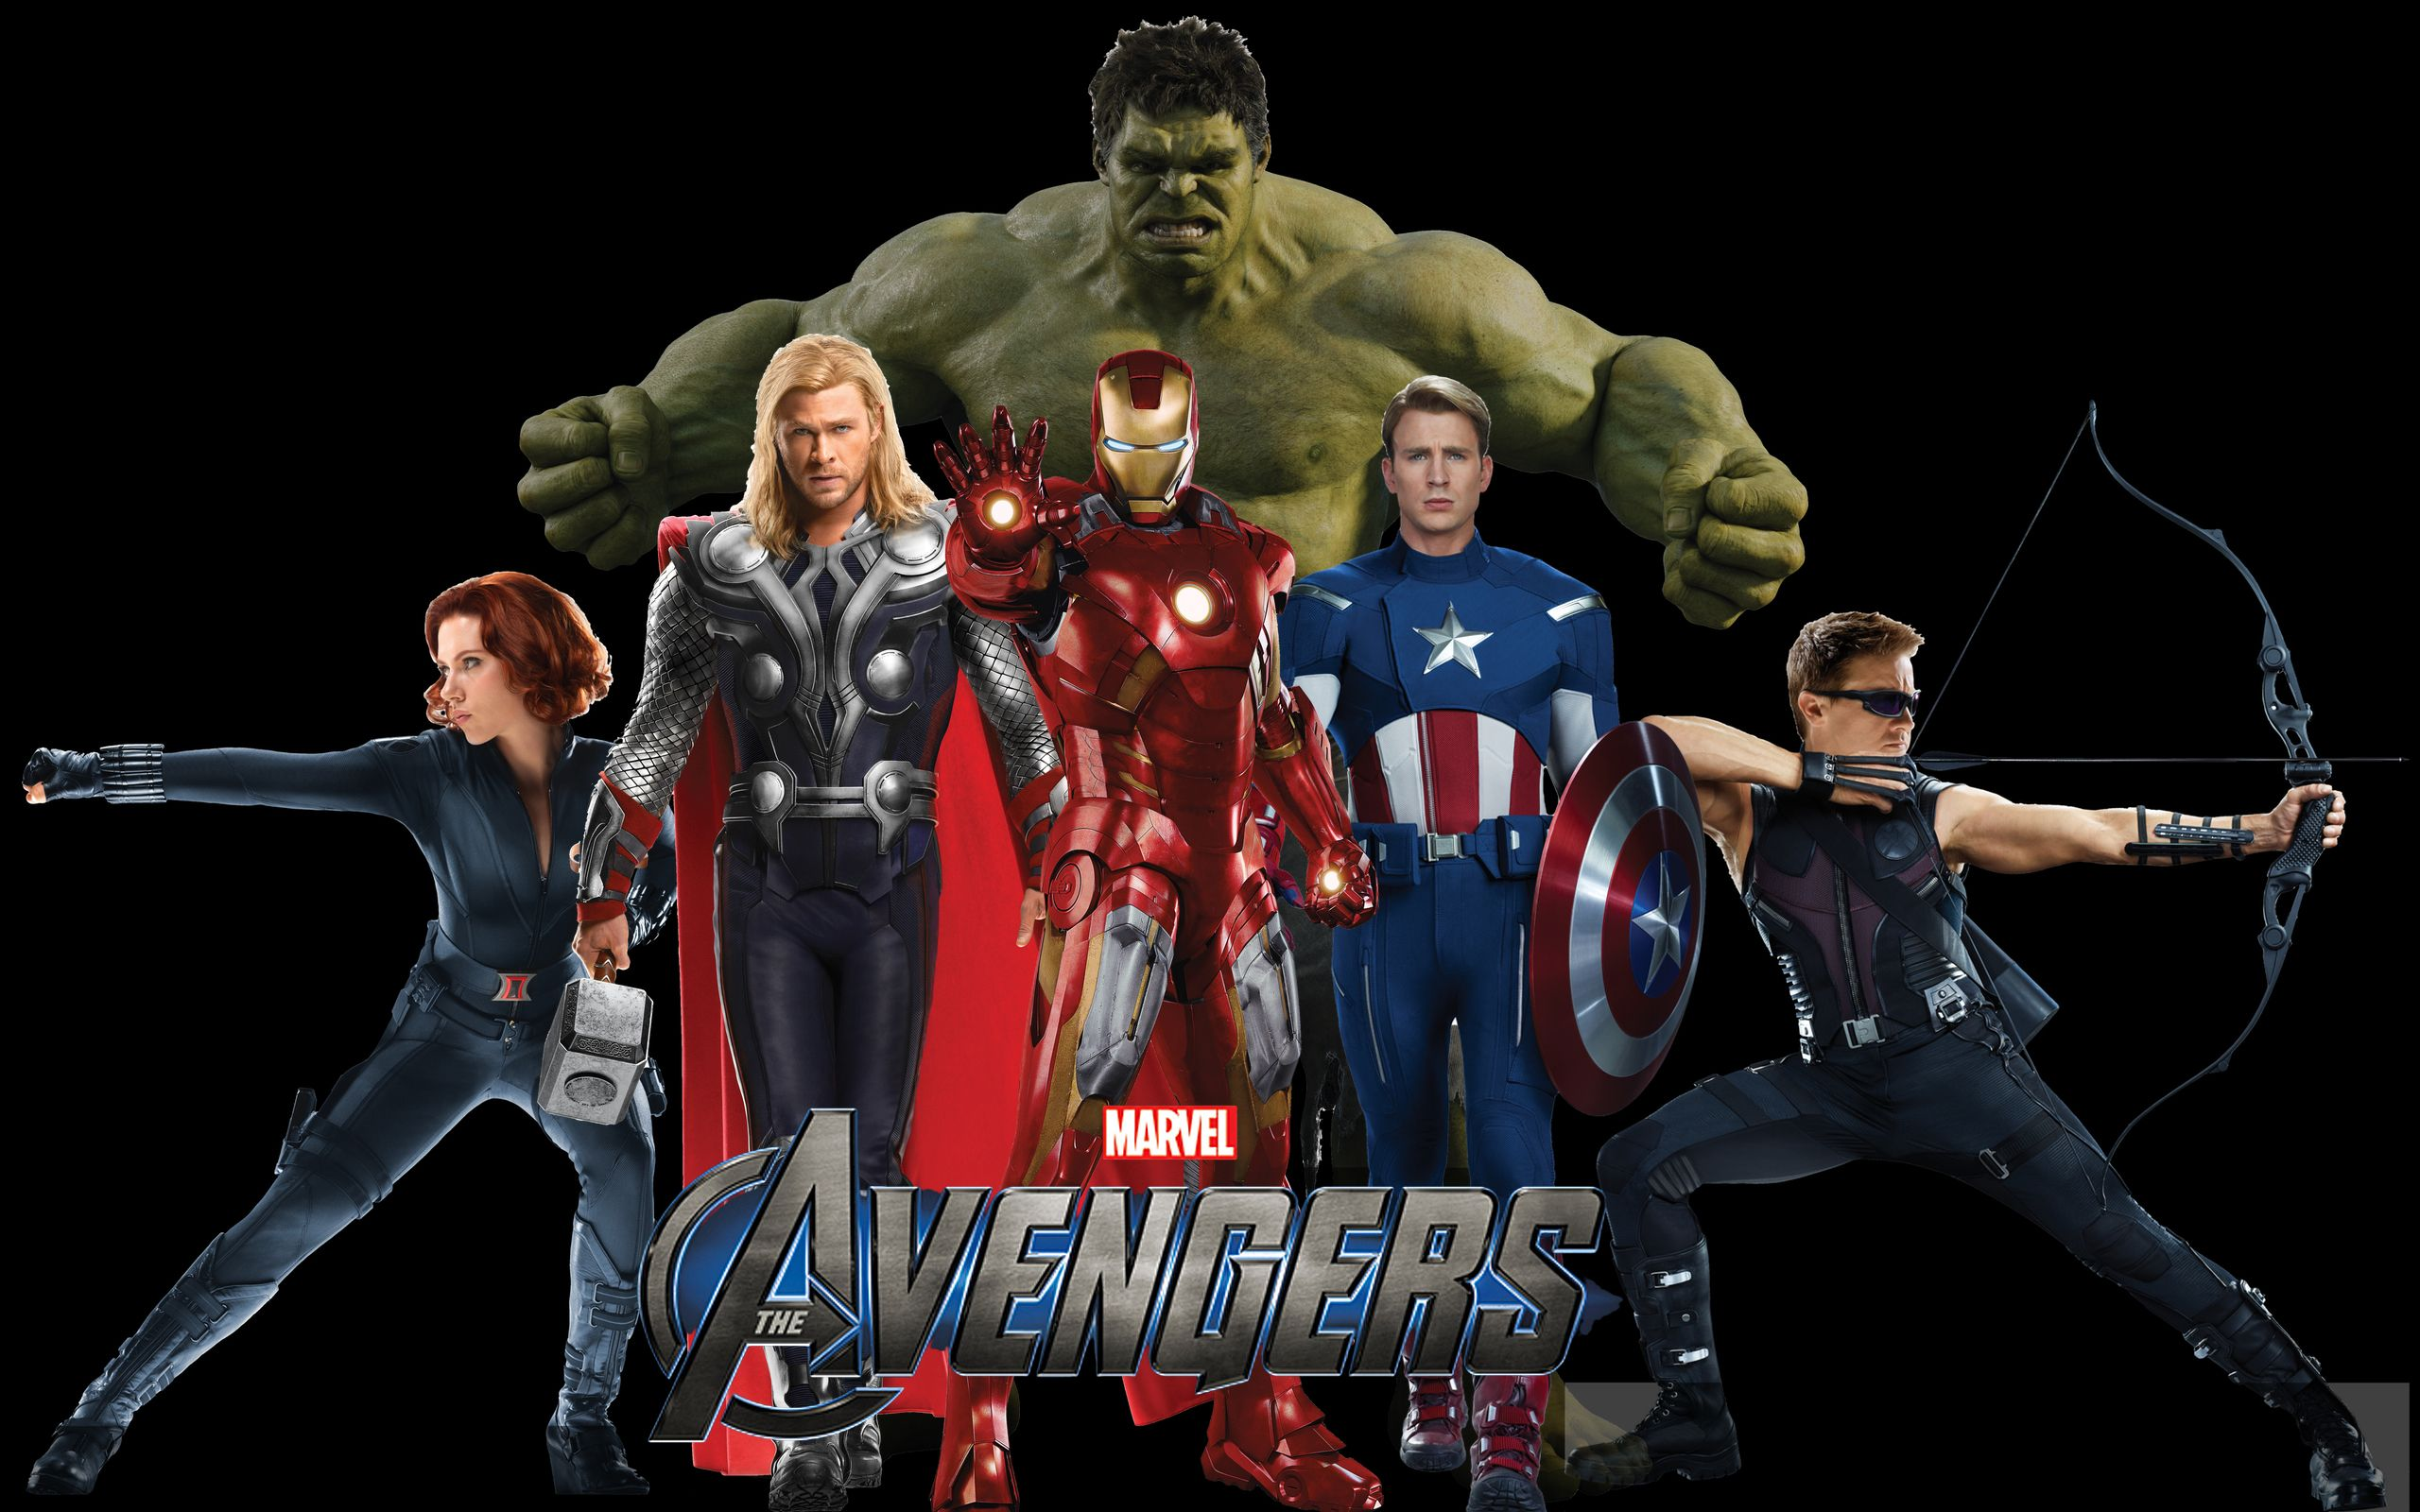 hd wallpaper and background photos of marvels avengers for fans of the avengers images - Avengers Marvel